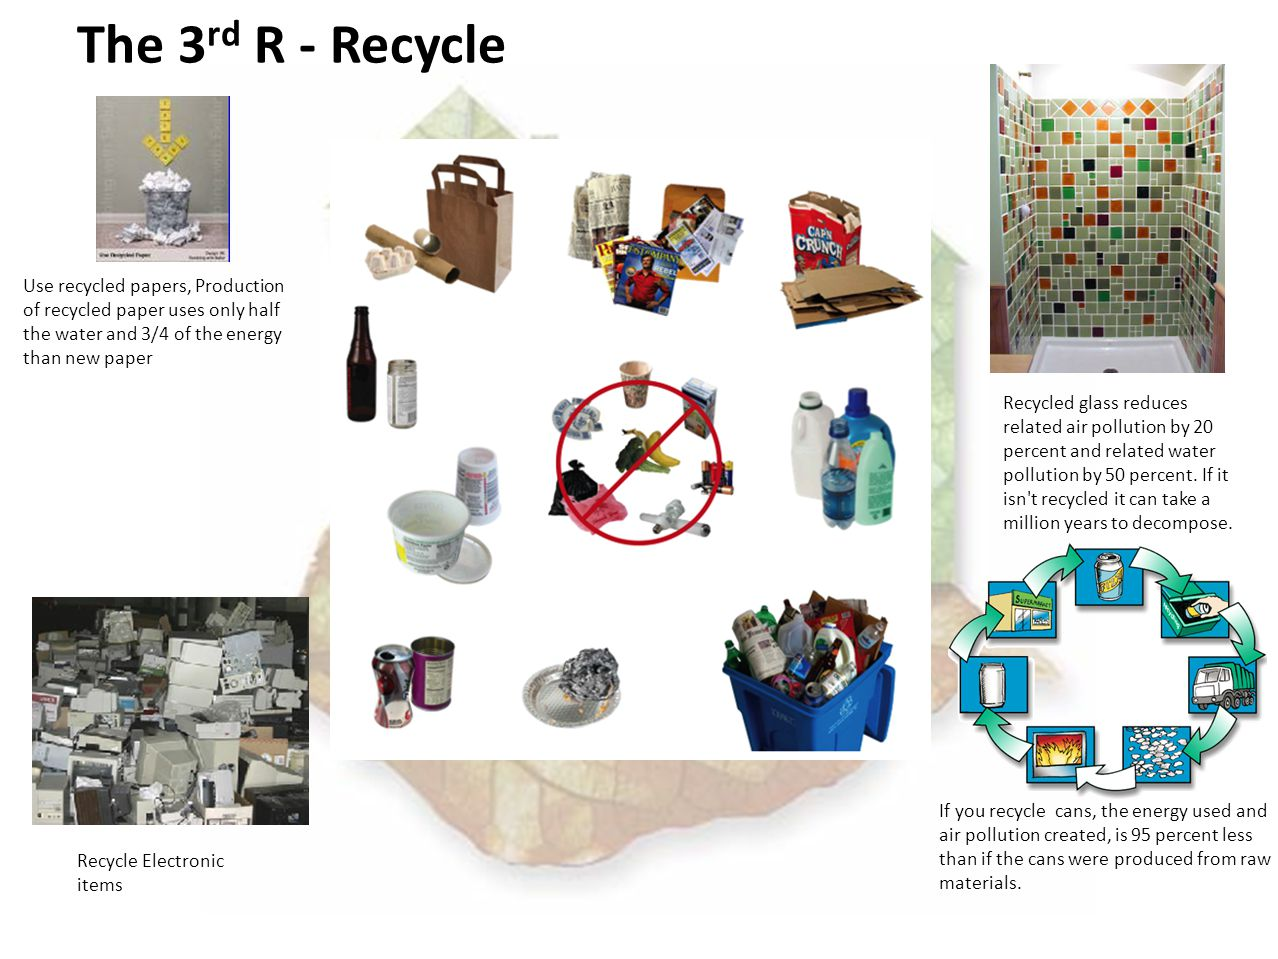 The 3 rd R - Recycle Use recycled papers, Production of recycled paper uses only half the water and 3/4 of the energy than new paper If you recycle cans, the energy used and air pollution created, is 95 percent less than if the cans were produced from raw materials.